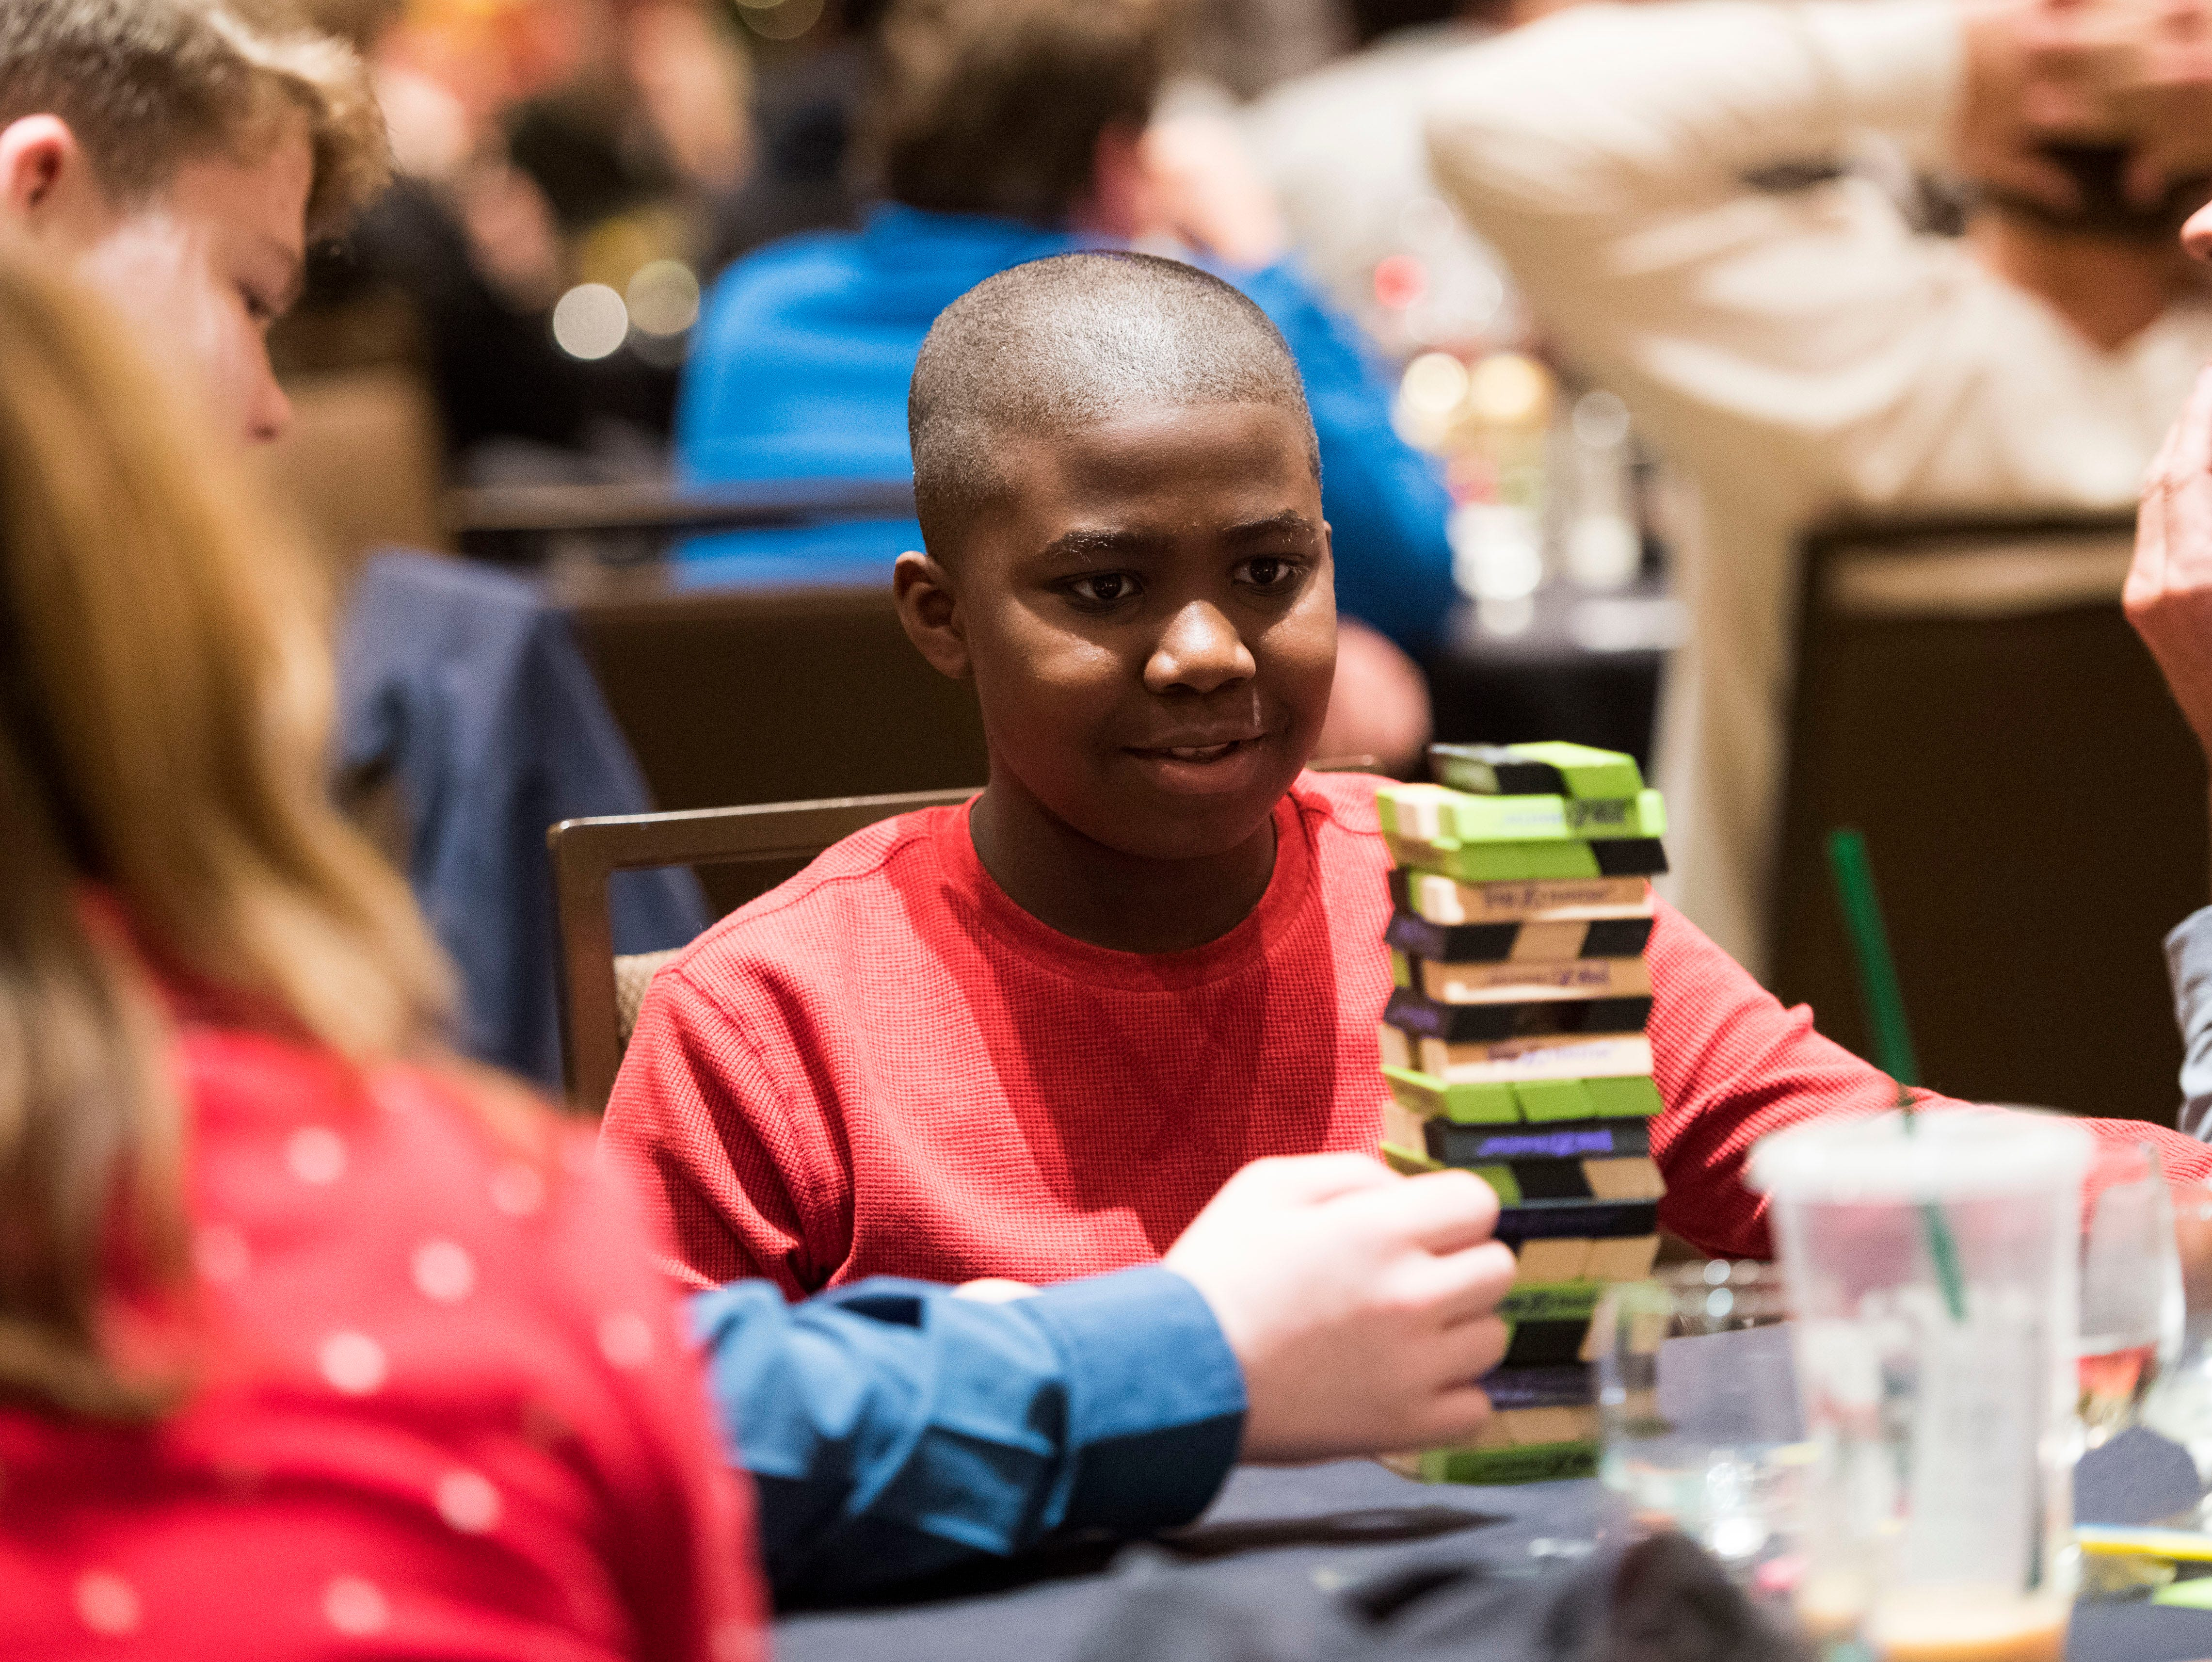 Coryion Downs, 11, plays Jenga at the Big Brothers Big Sisters annual holiday party at the Crowne Plaza Saturday, Dec. 1, 2018. Nearly 300 mentors, mentees and family members were in attendance.